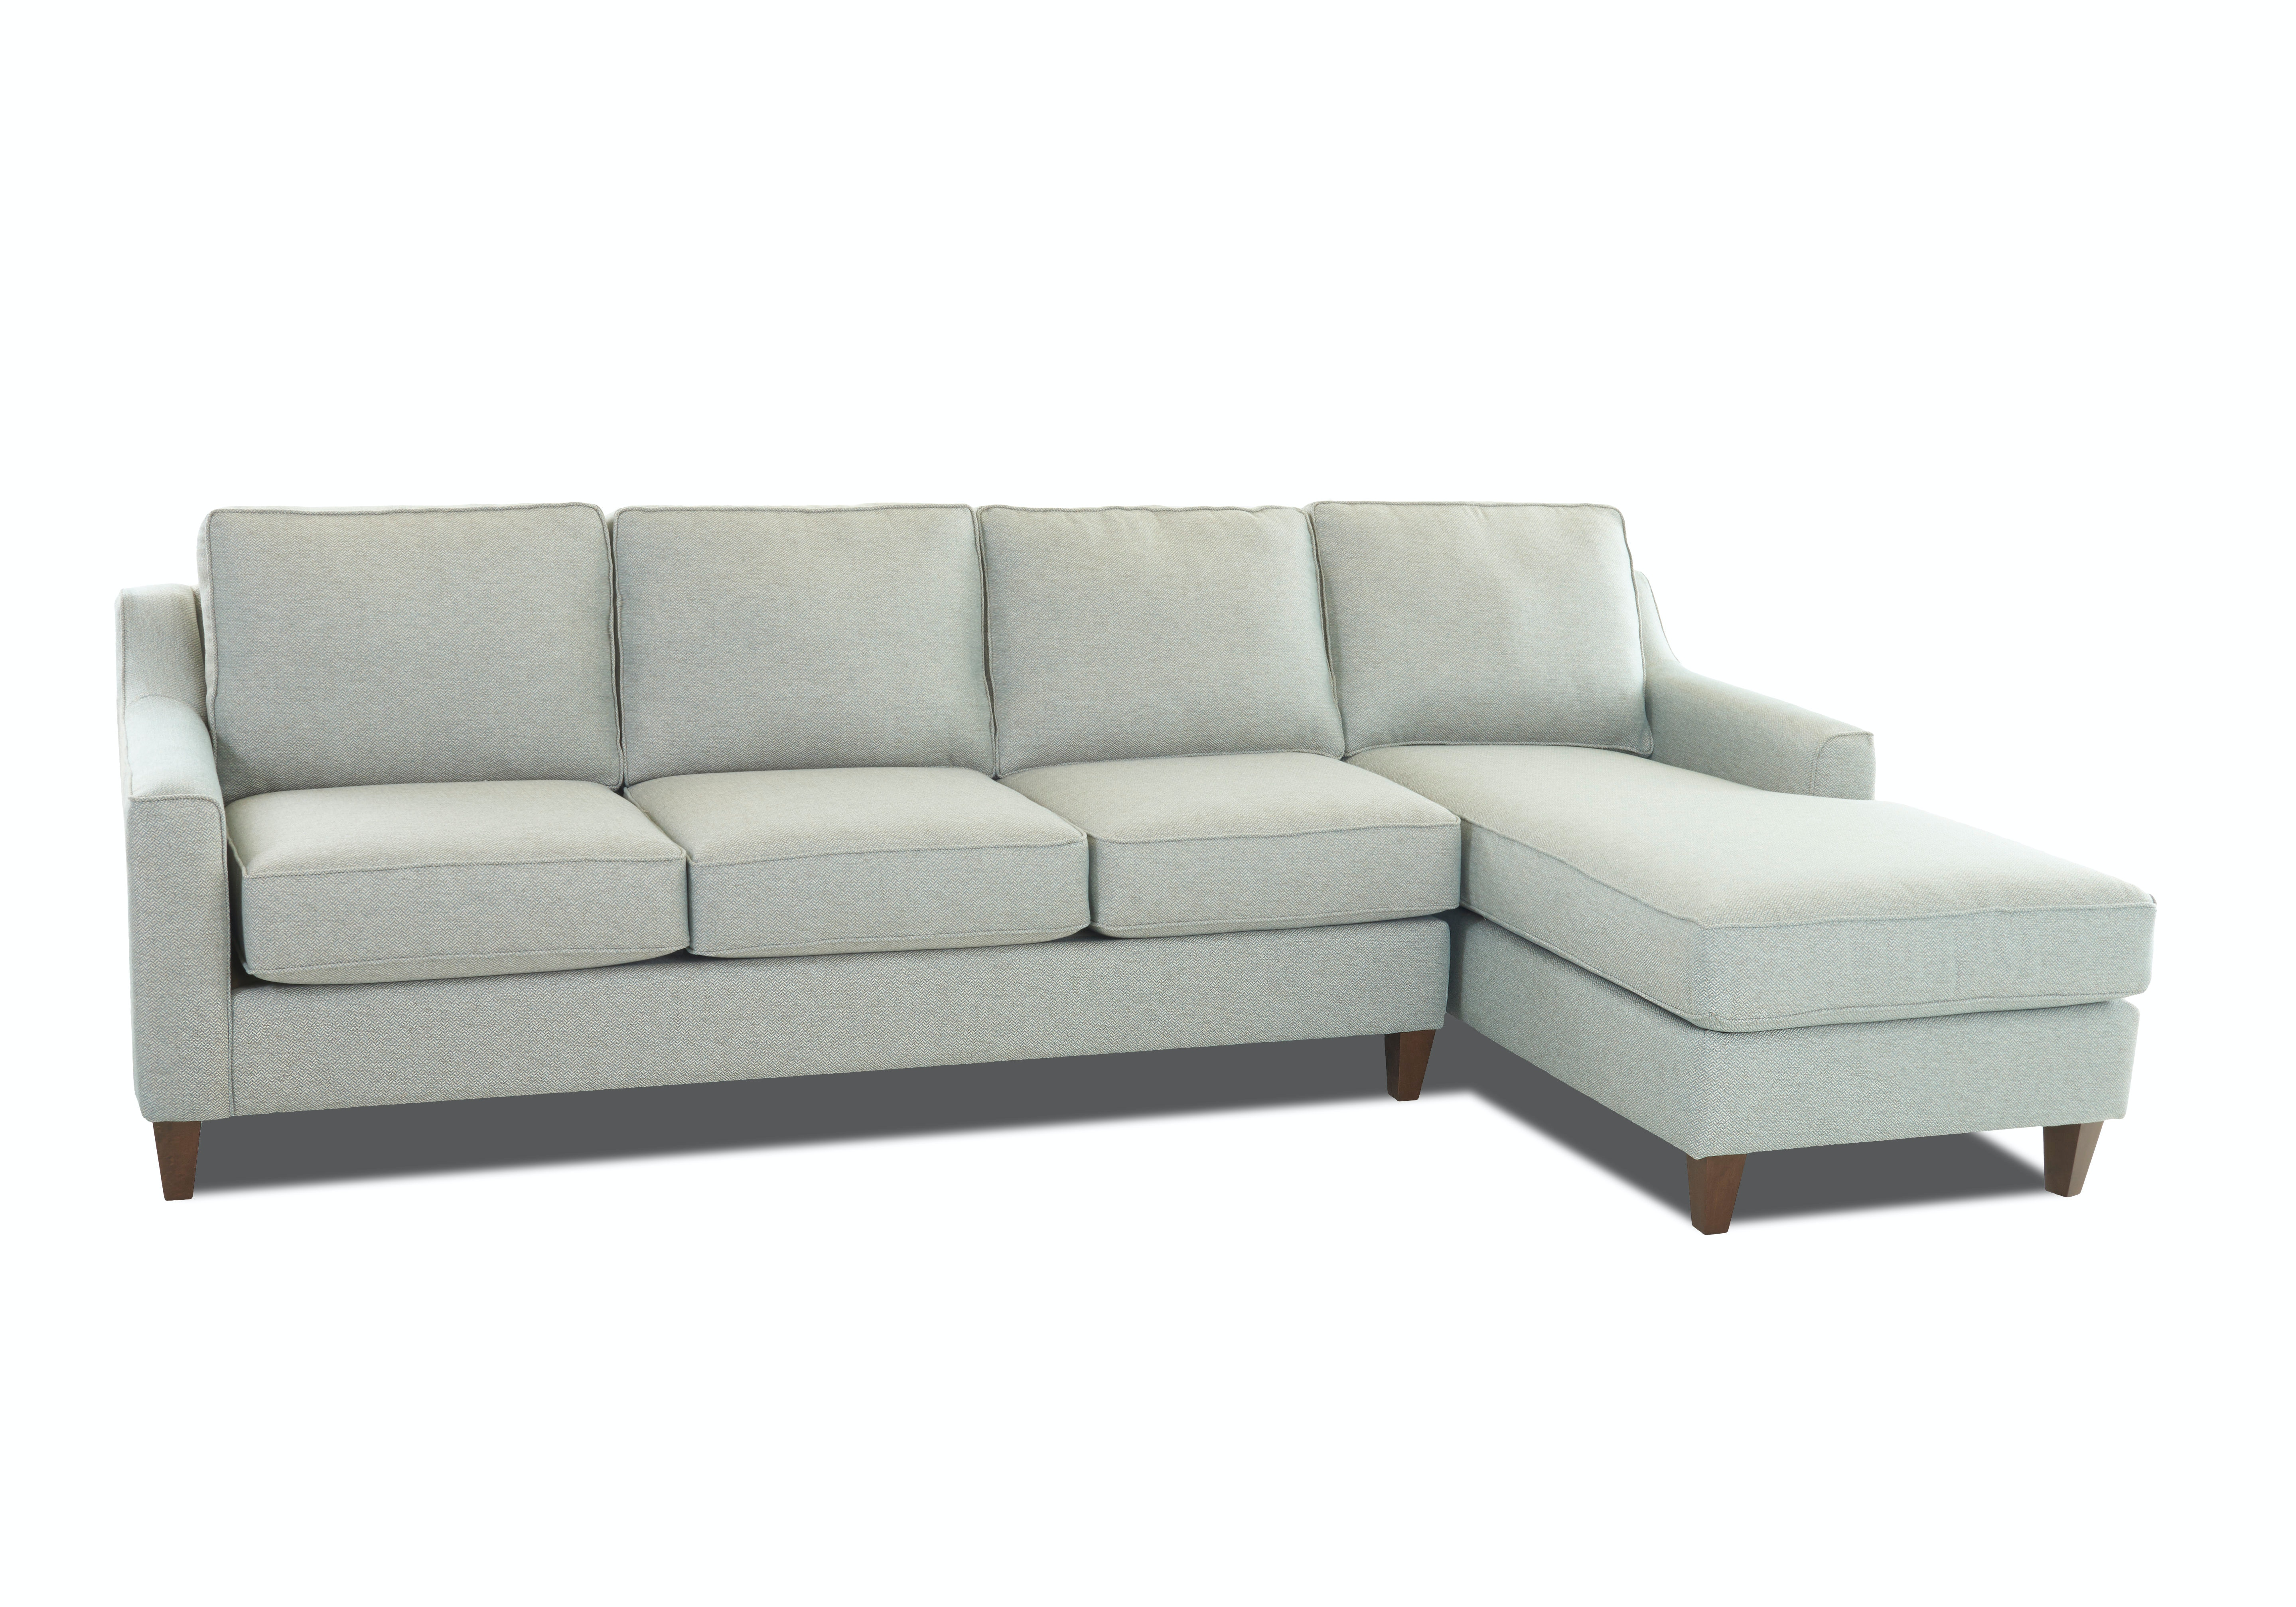 Comfort Design Living Room Jesper Sectional C2400 SECT At Norwood Furniture